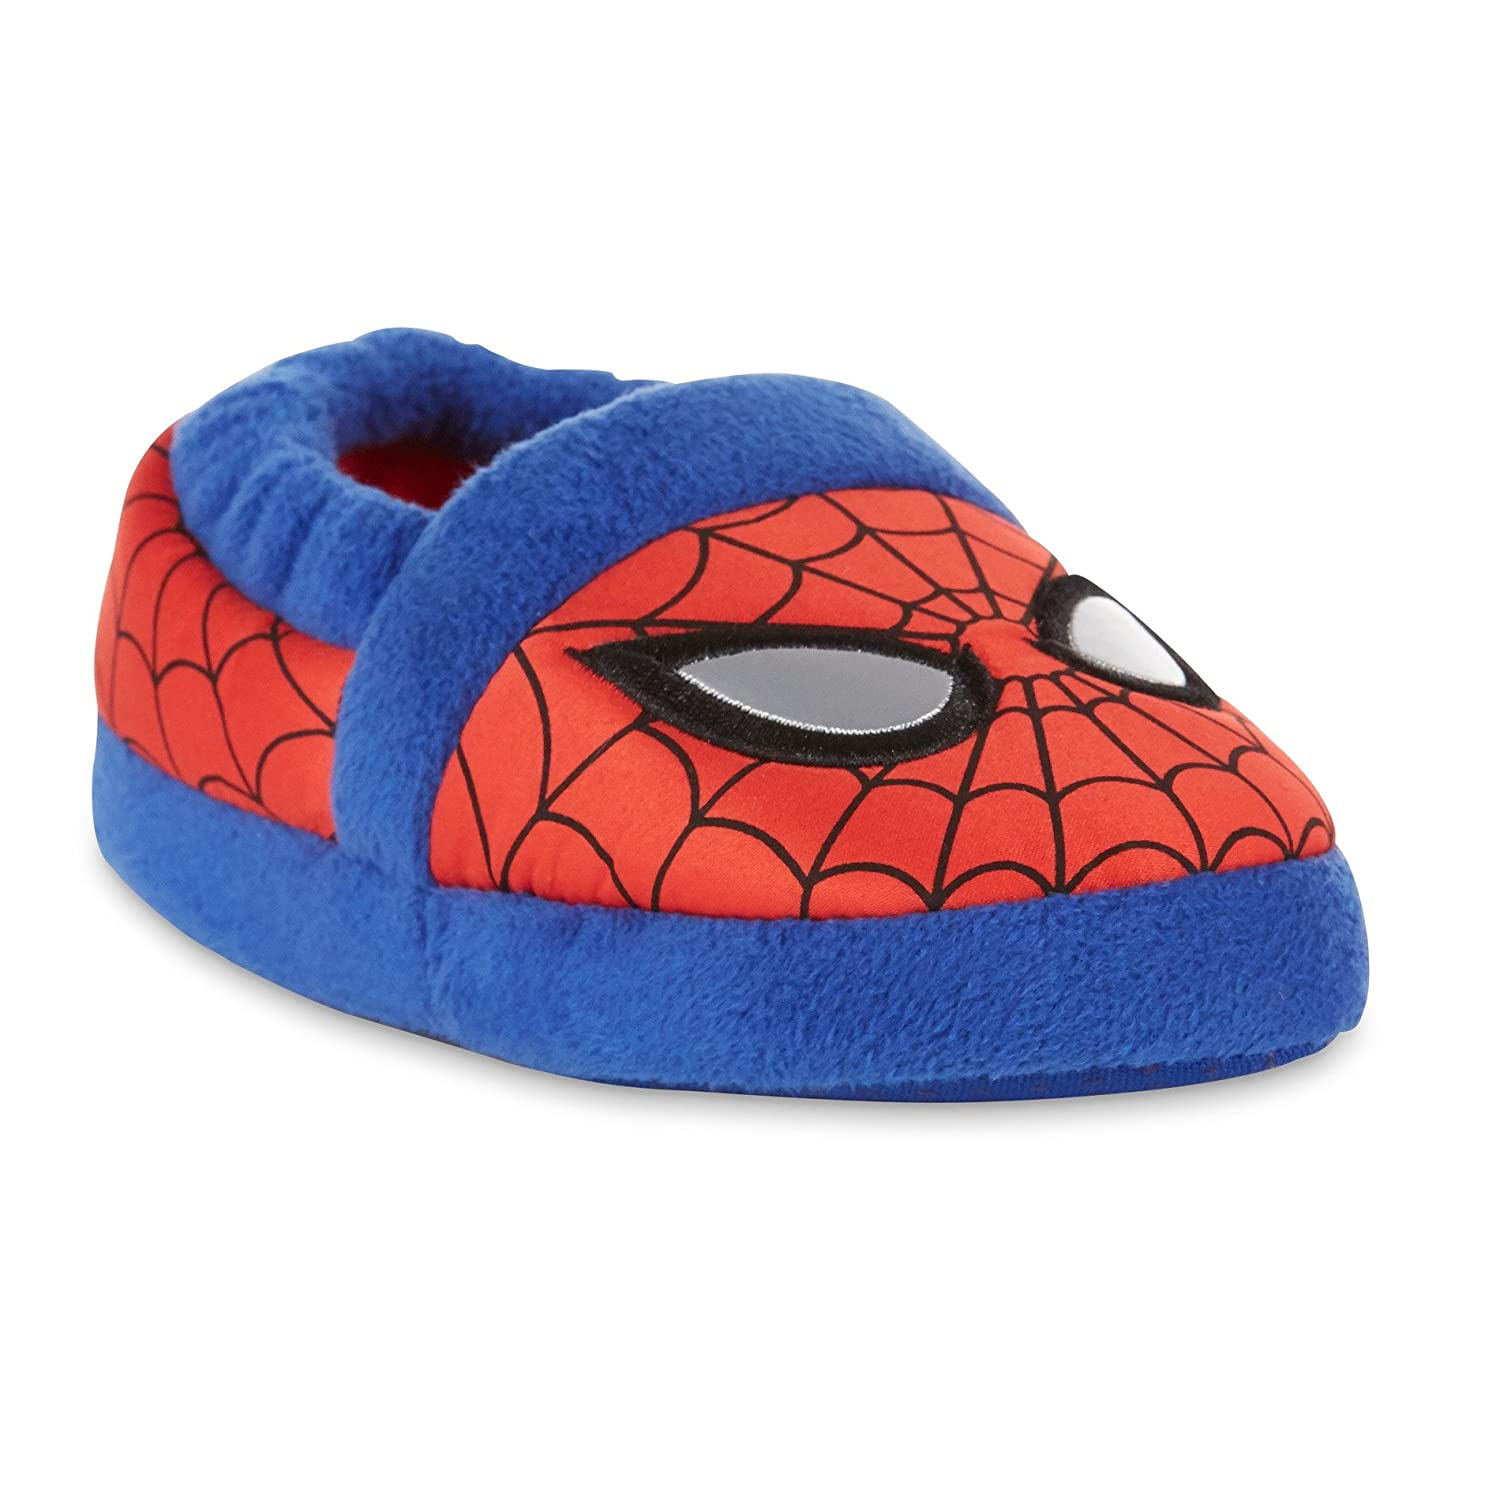 Marvel Spider-Man Toddler Boys' Red and Blue Slippers